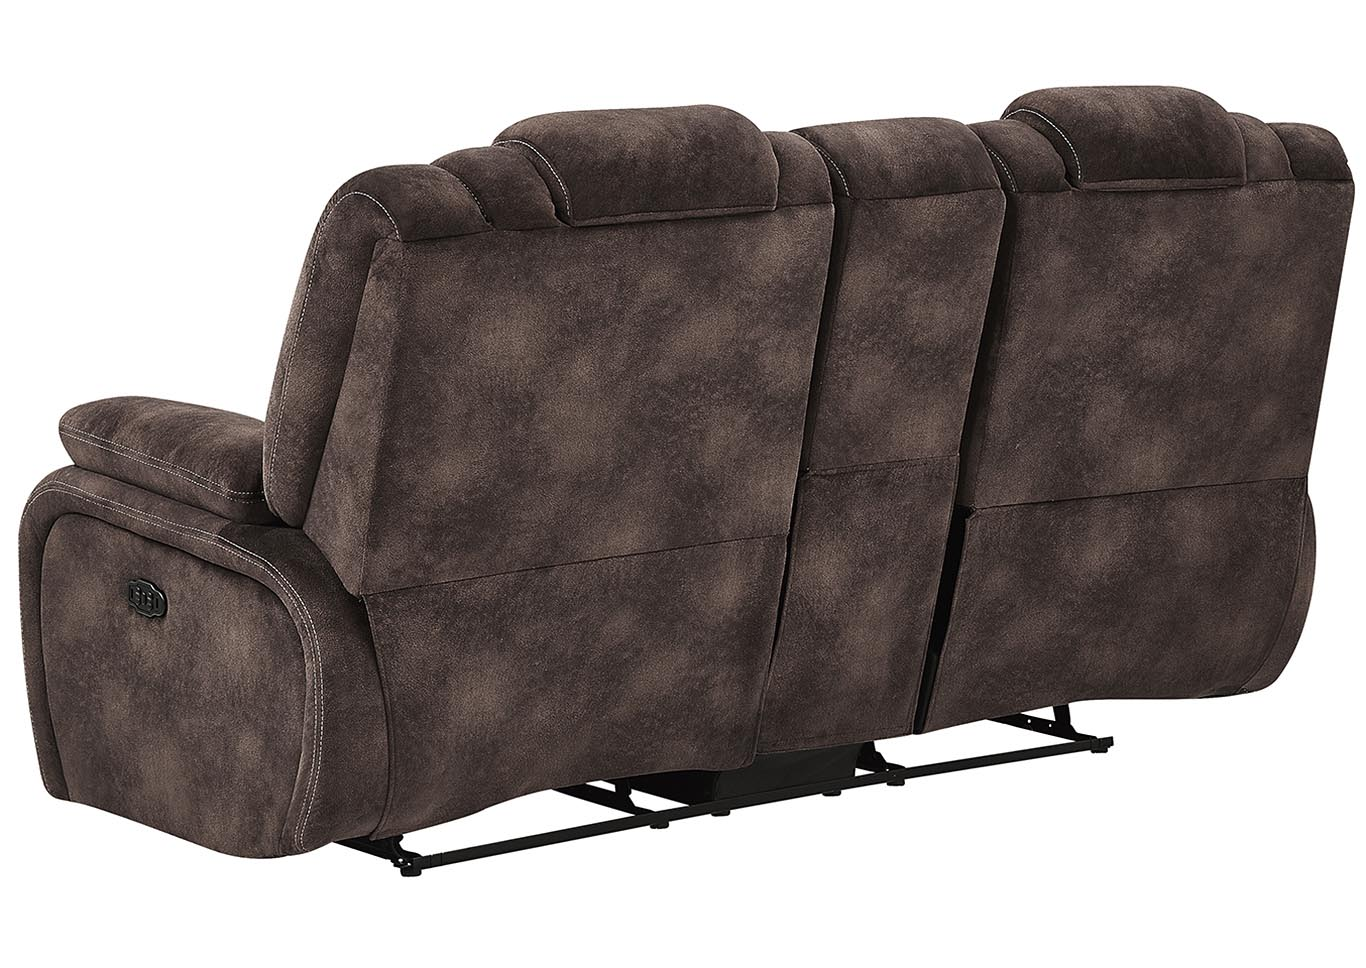 Night Range Chocolate Power Reclining Loveseat w/Drop-Down Table, Headrest & USB,Global Furniture USA